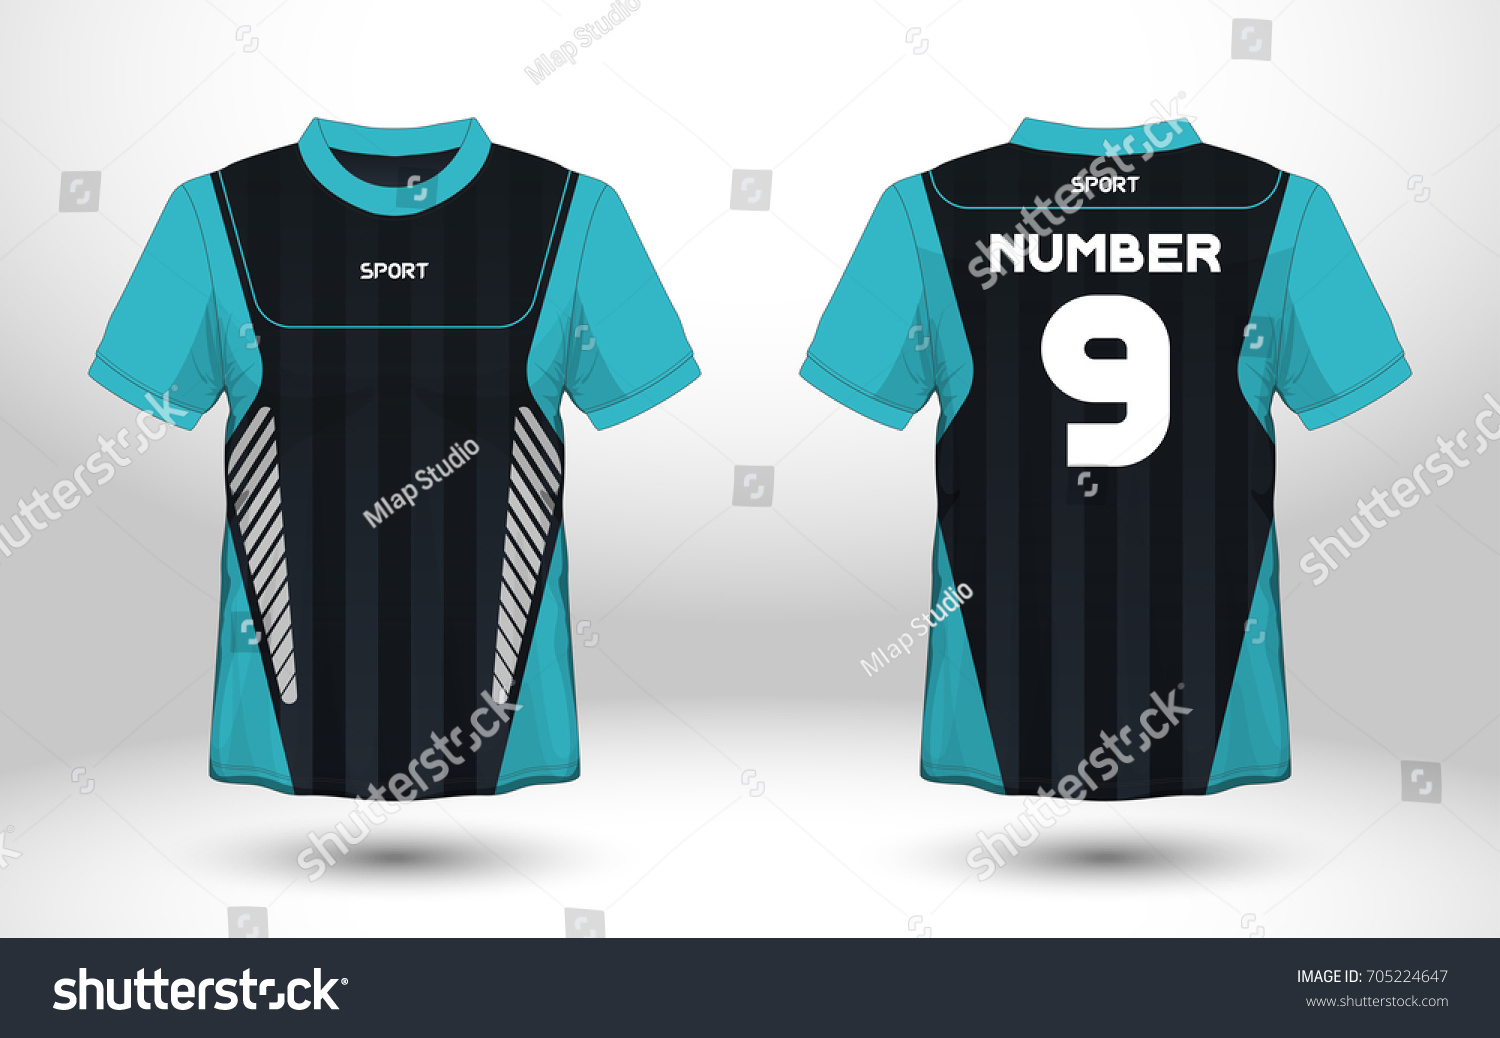 Royalty Free Blue And Black Layout Football Sport T 705224647